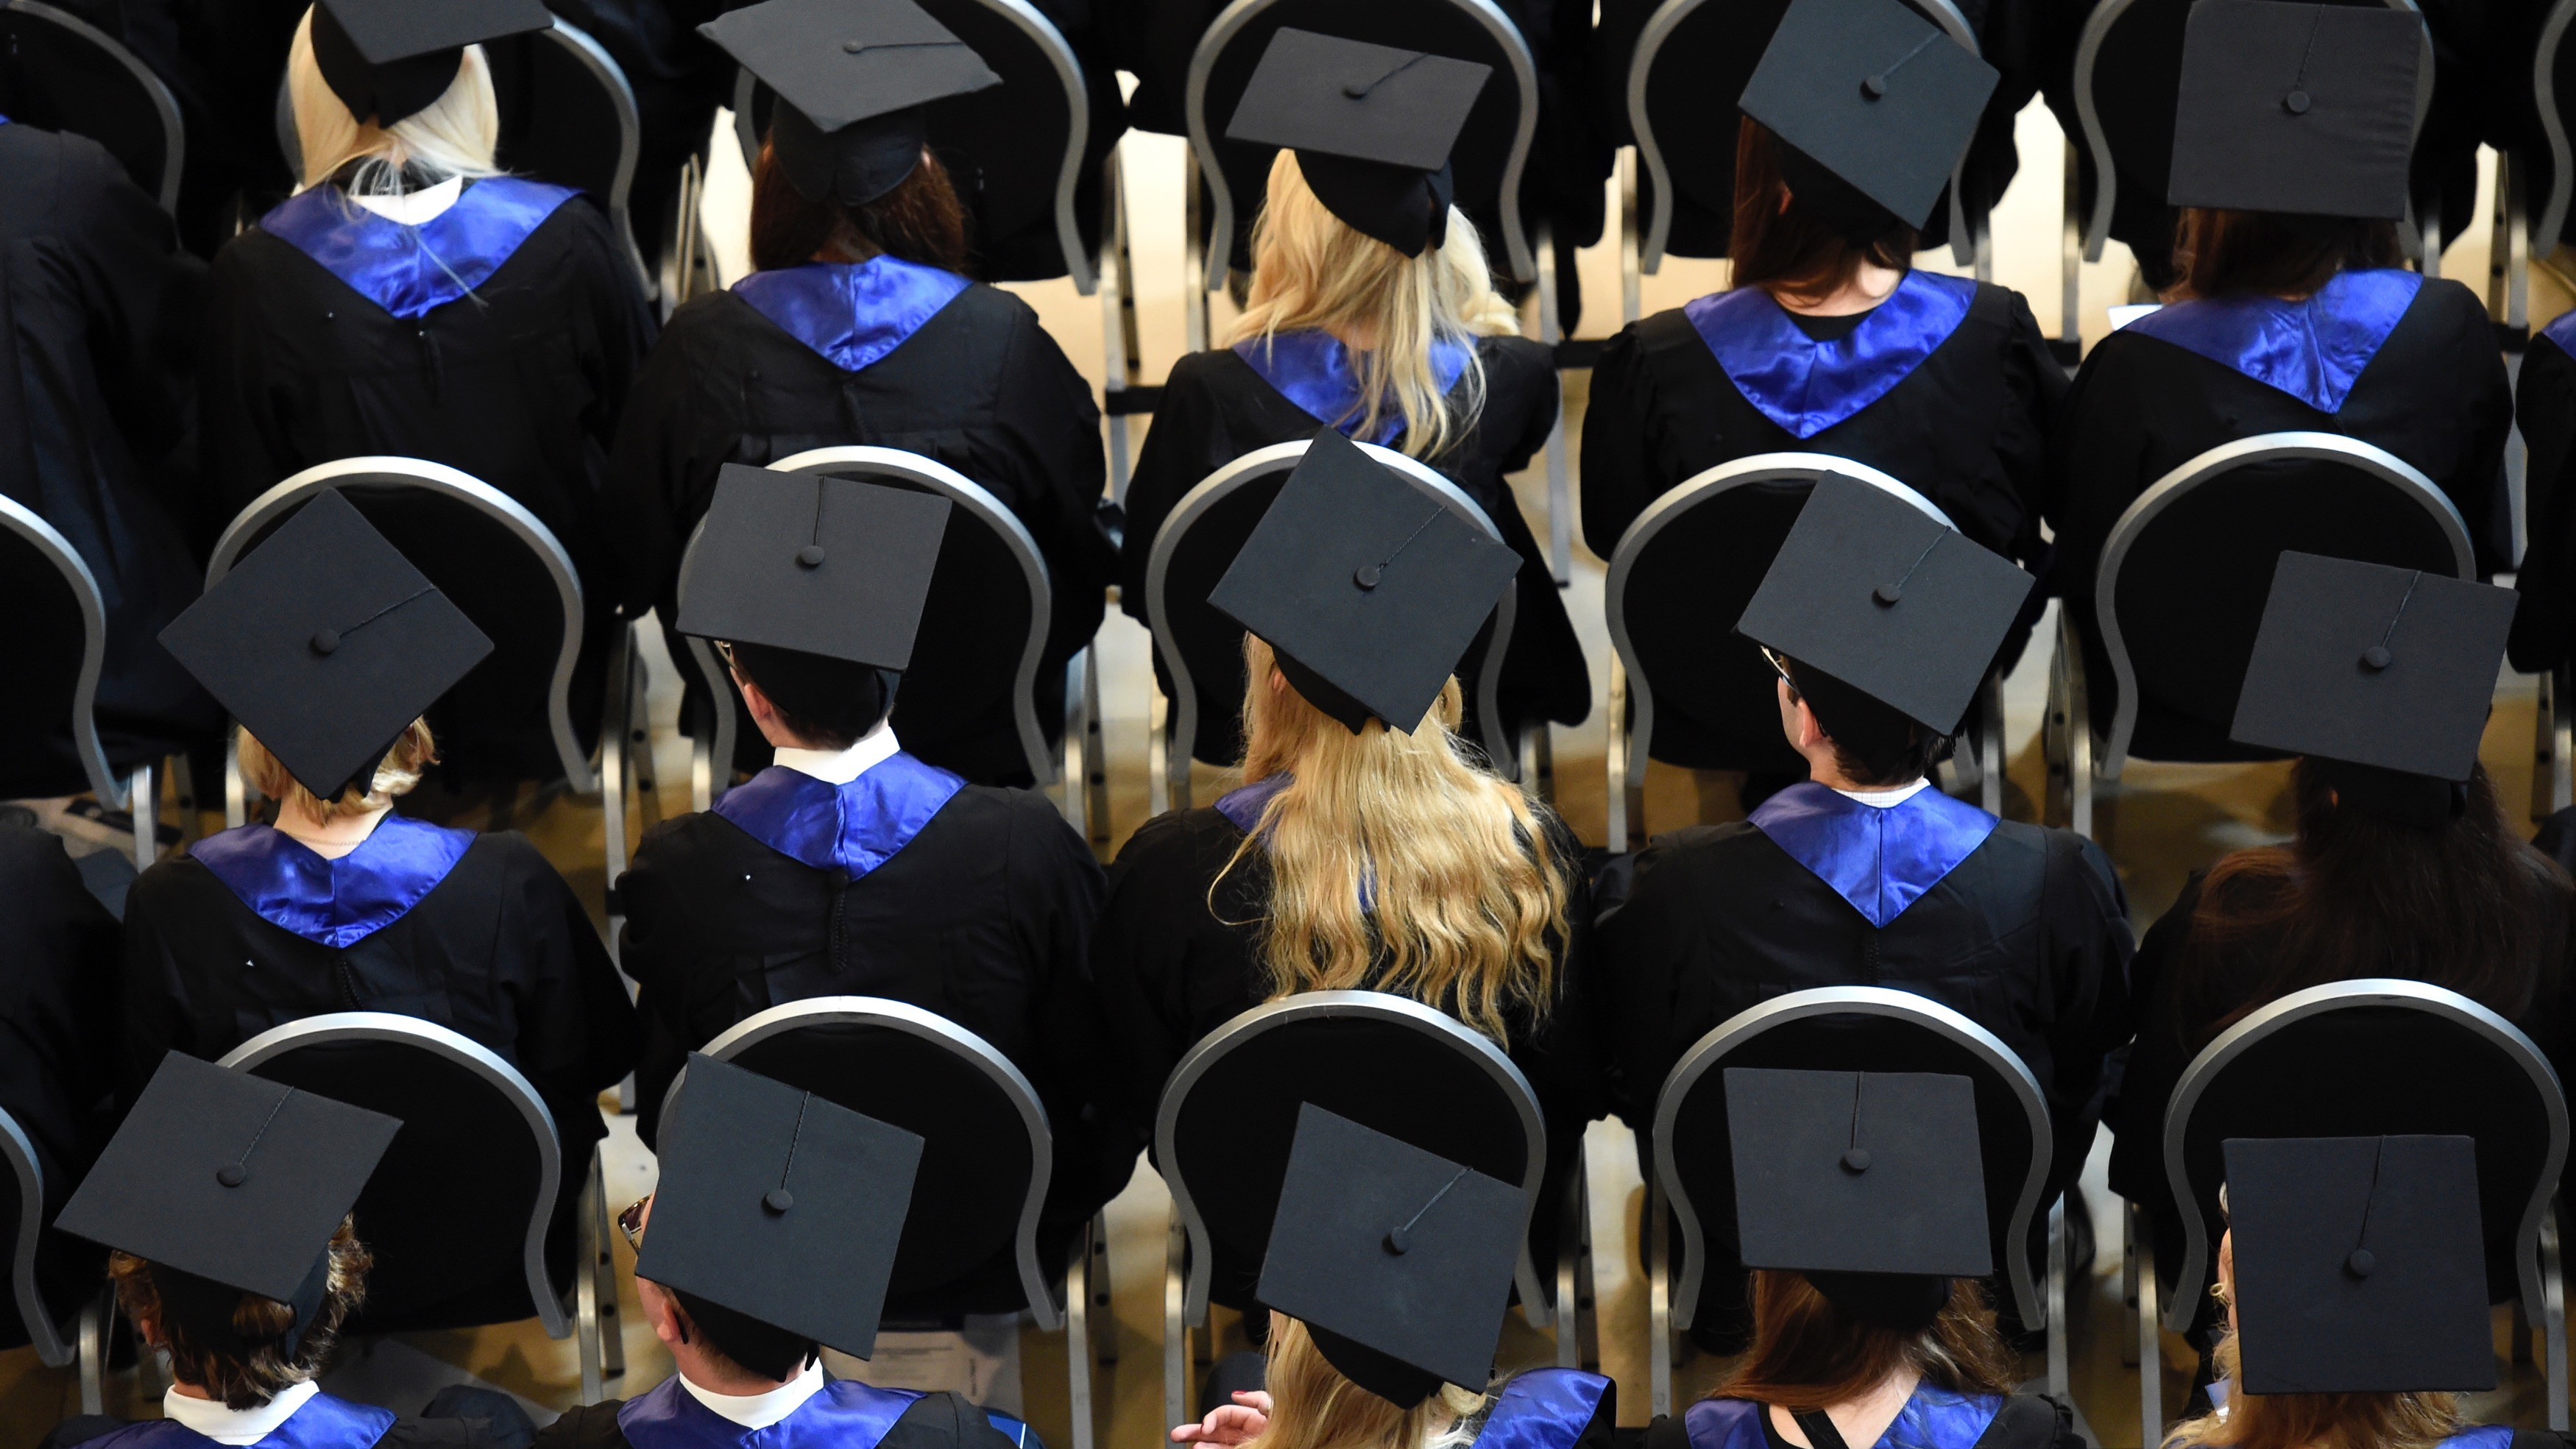 Students attend their graduation ceremony at the Hamburg School of Business Administration (HSBA) in Hamburg, October 1, 2014.  REUTERS/Fabian Bimmer (GERMANY - Tags: BUSINESS EDUCATION SOCIETY) - RTR48JNH